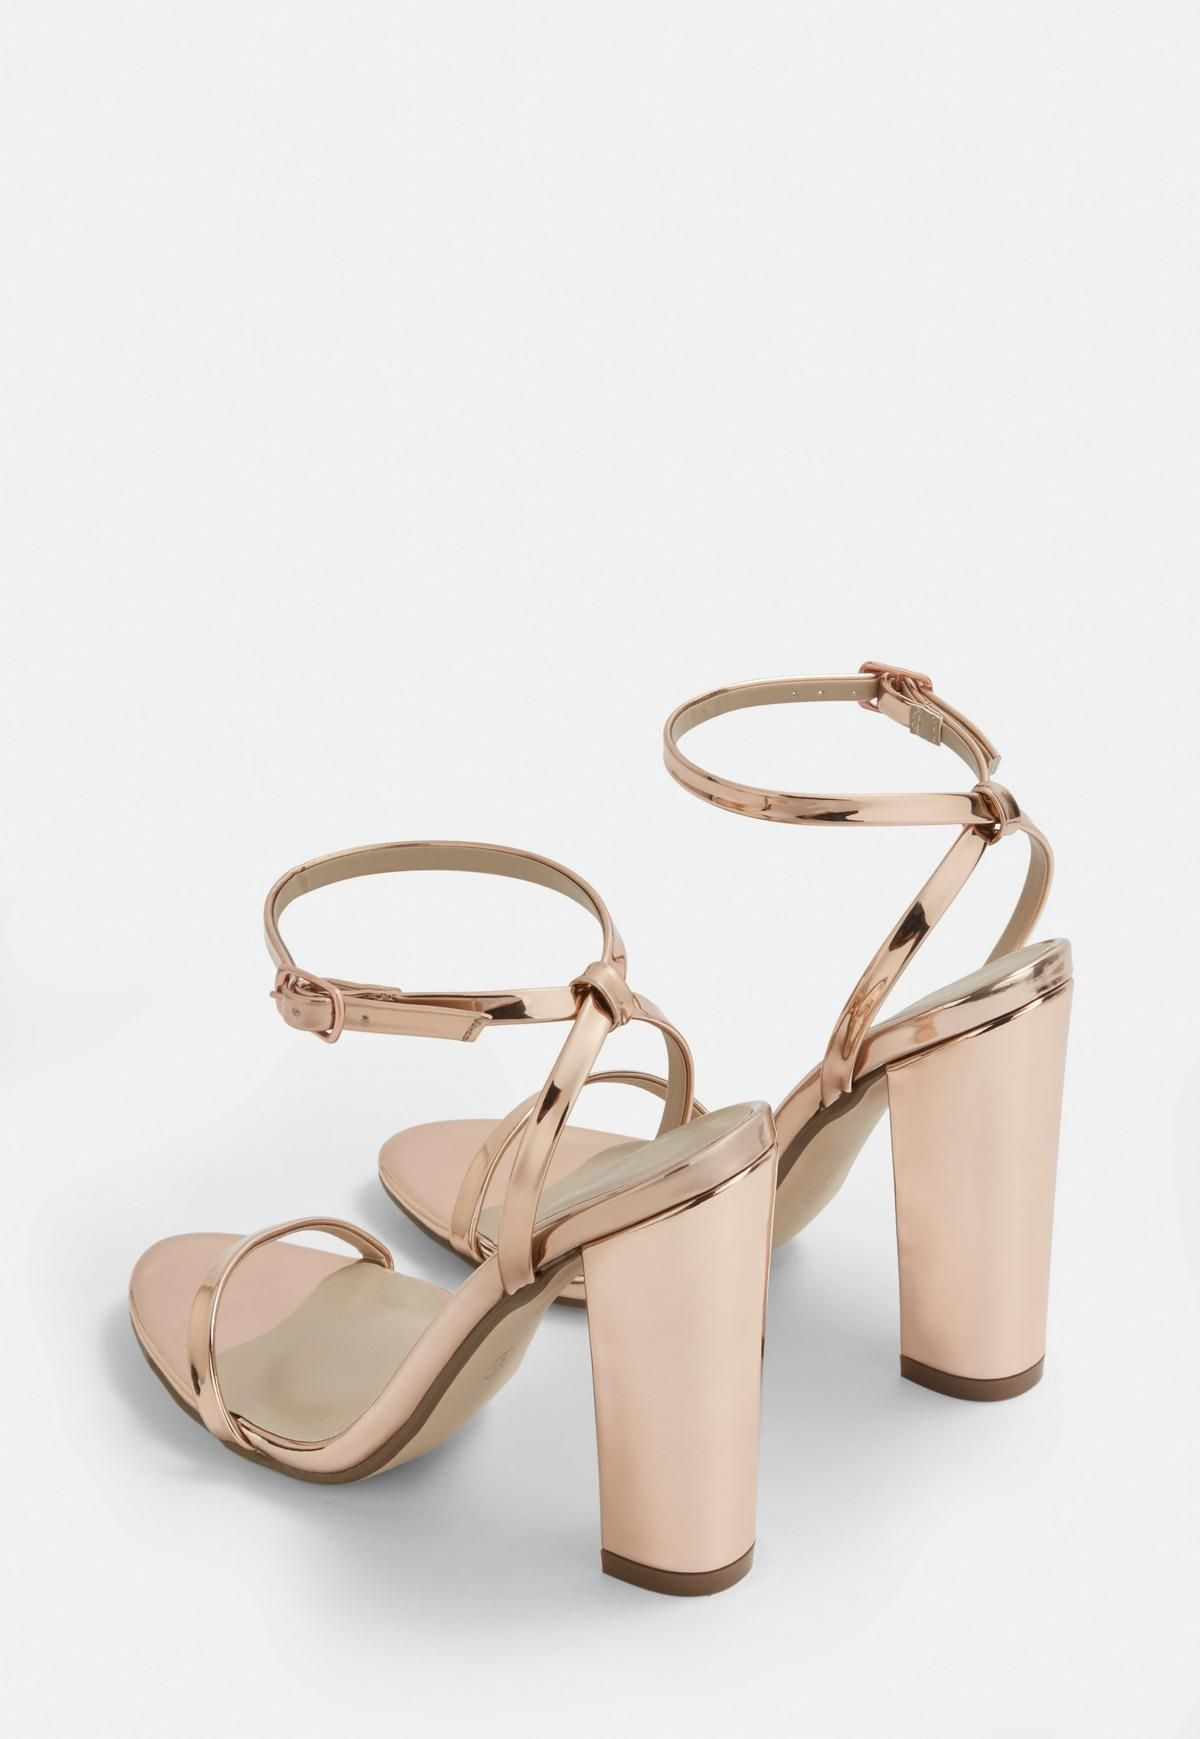 c03dc1f7cf1 Rose Gold Block Heel Sandals in 2019 | Chaussures mariage | Gold ...